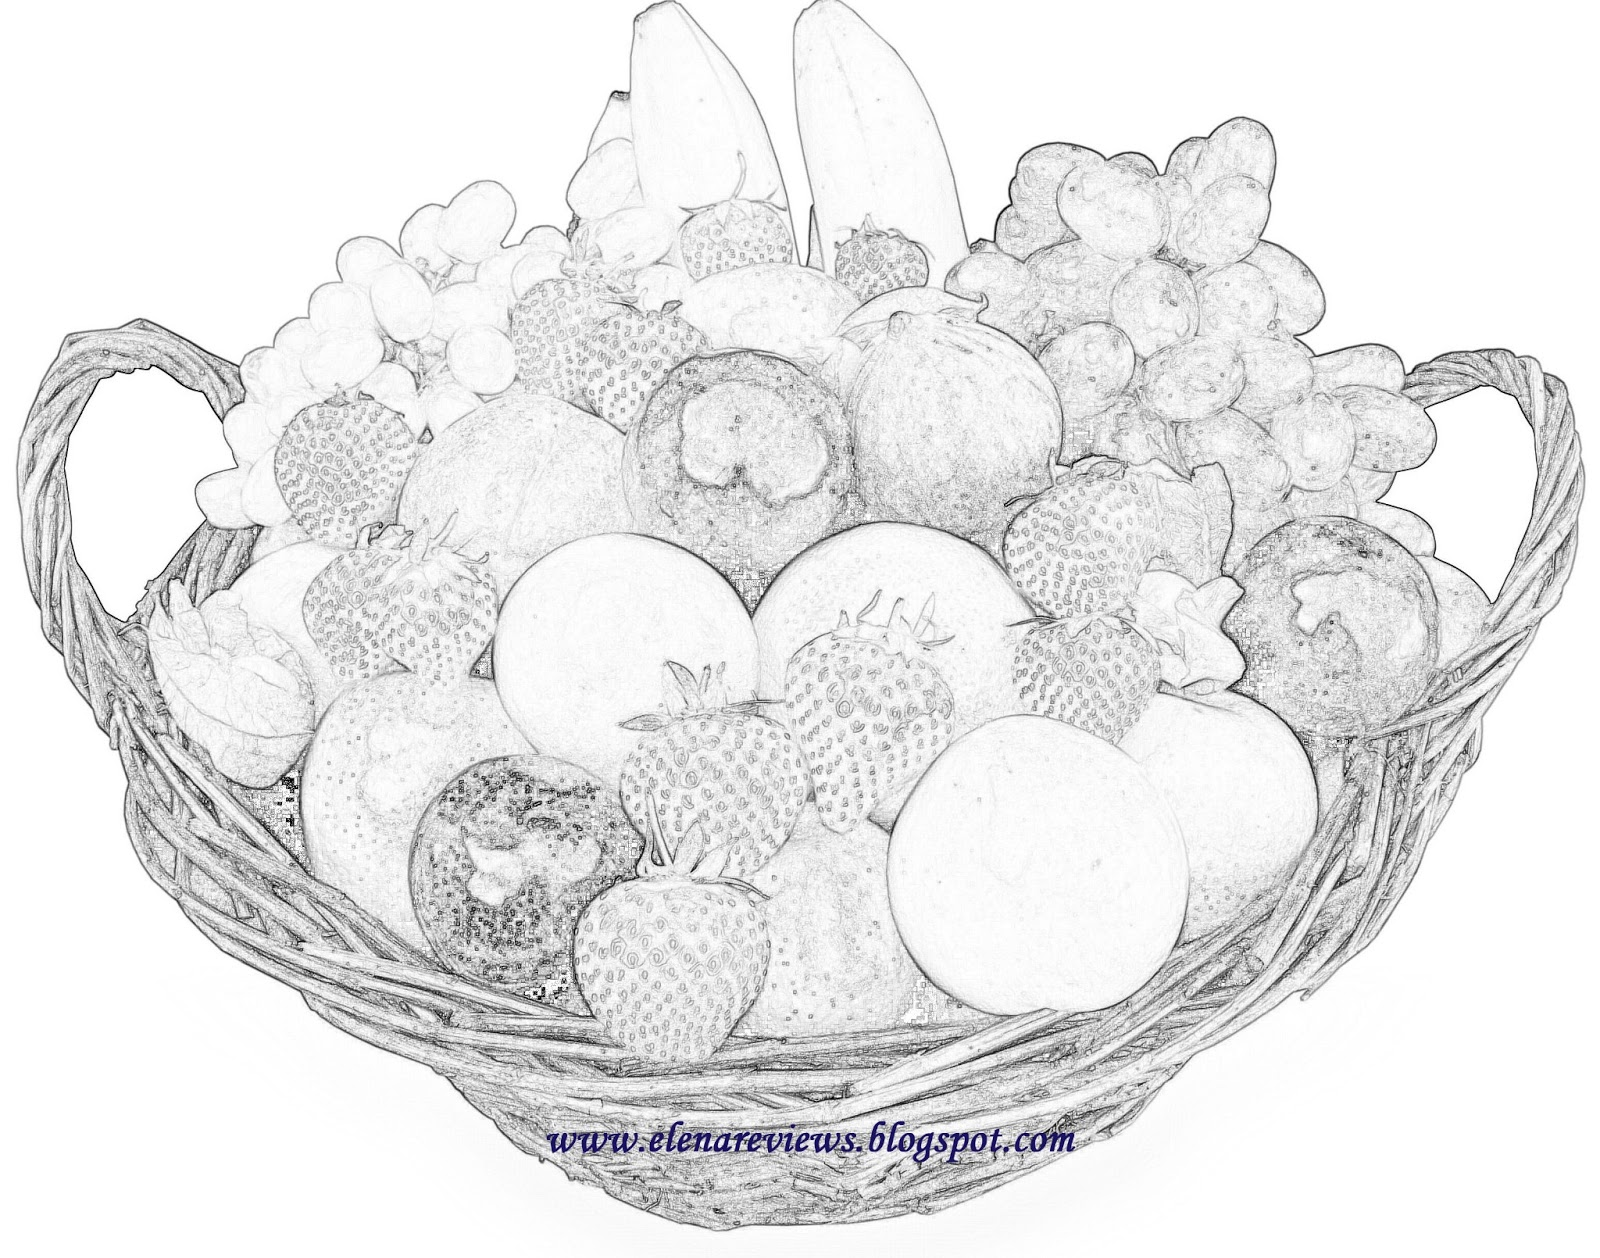 coloring a basket full of fruits elena reviews